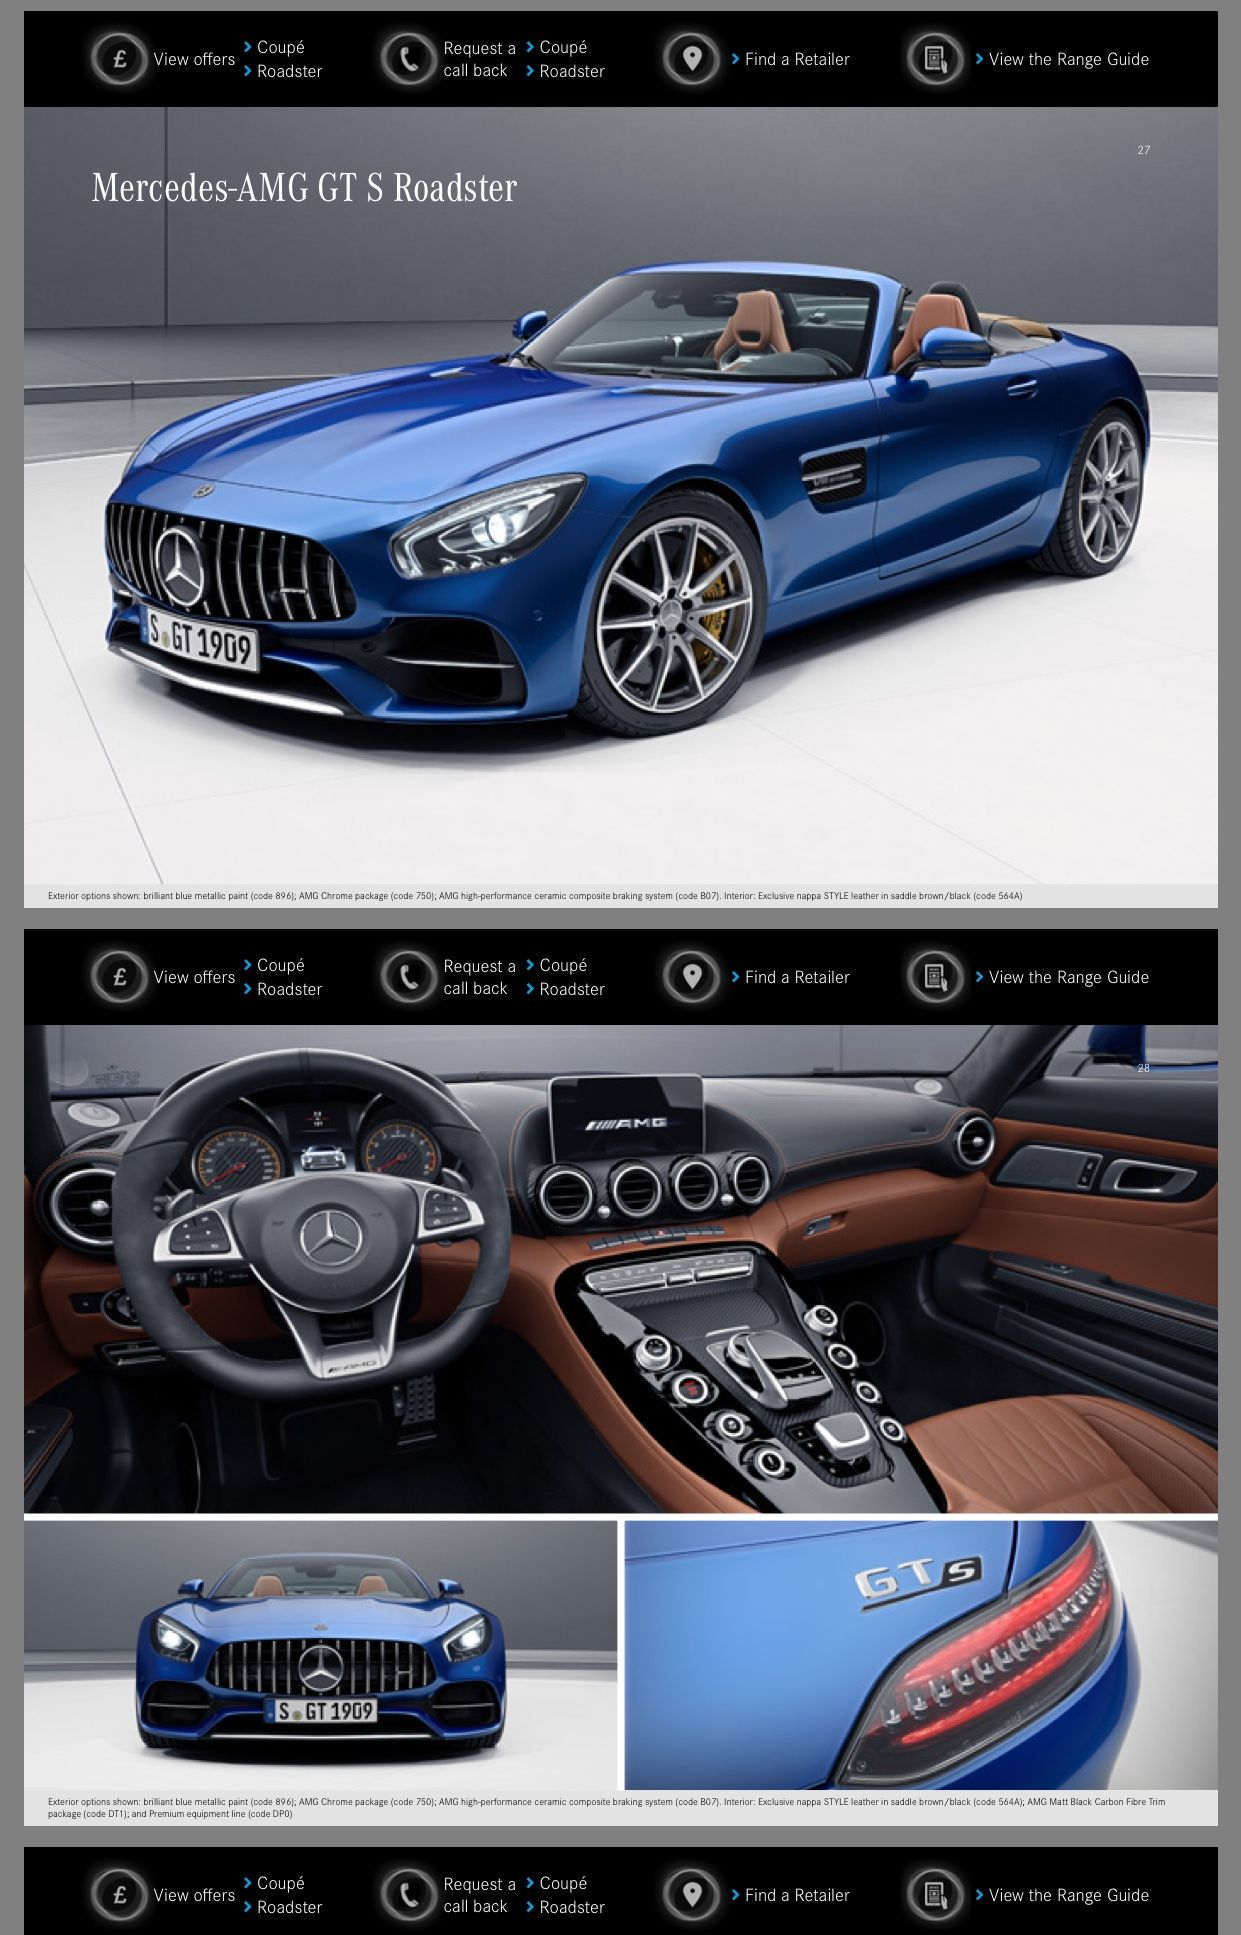 Pin By Autowiz On Mercedes Mercedes Amg Gt S Mercedes Maybach